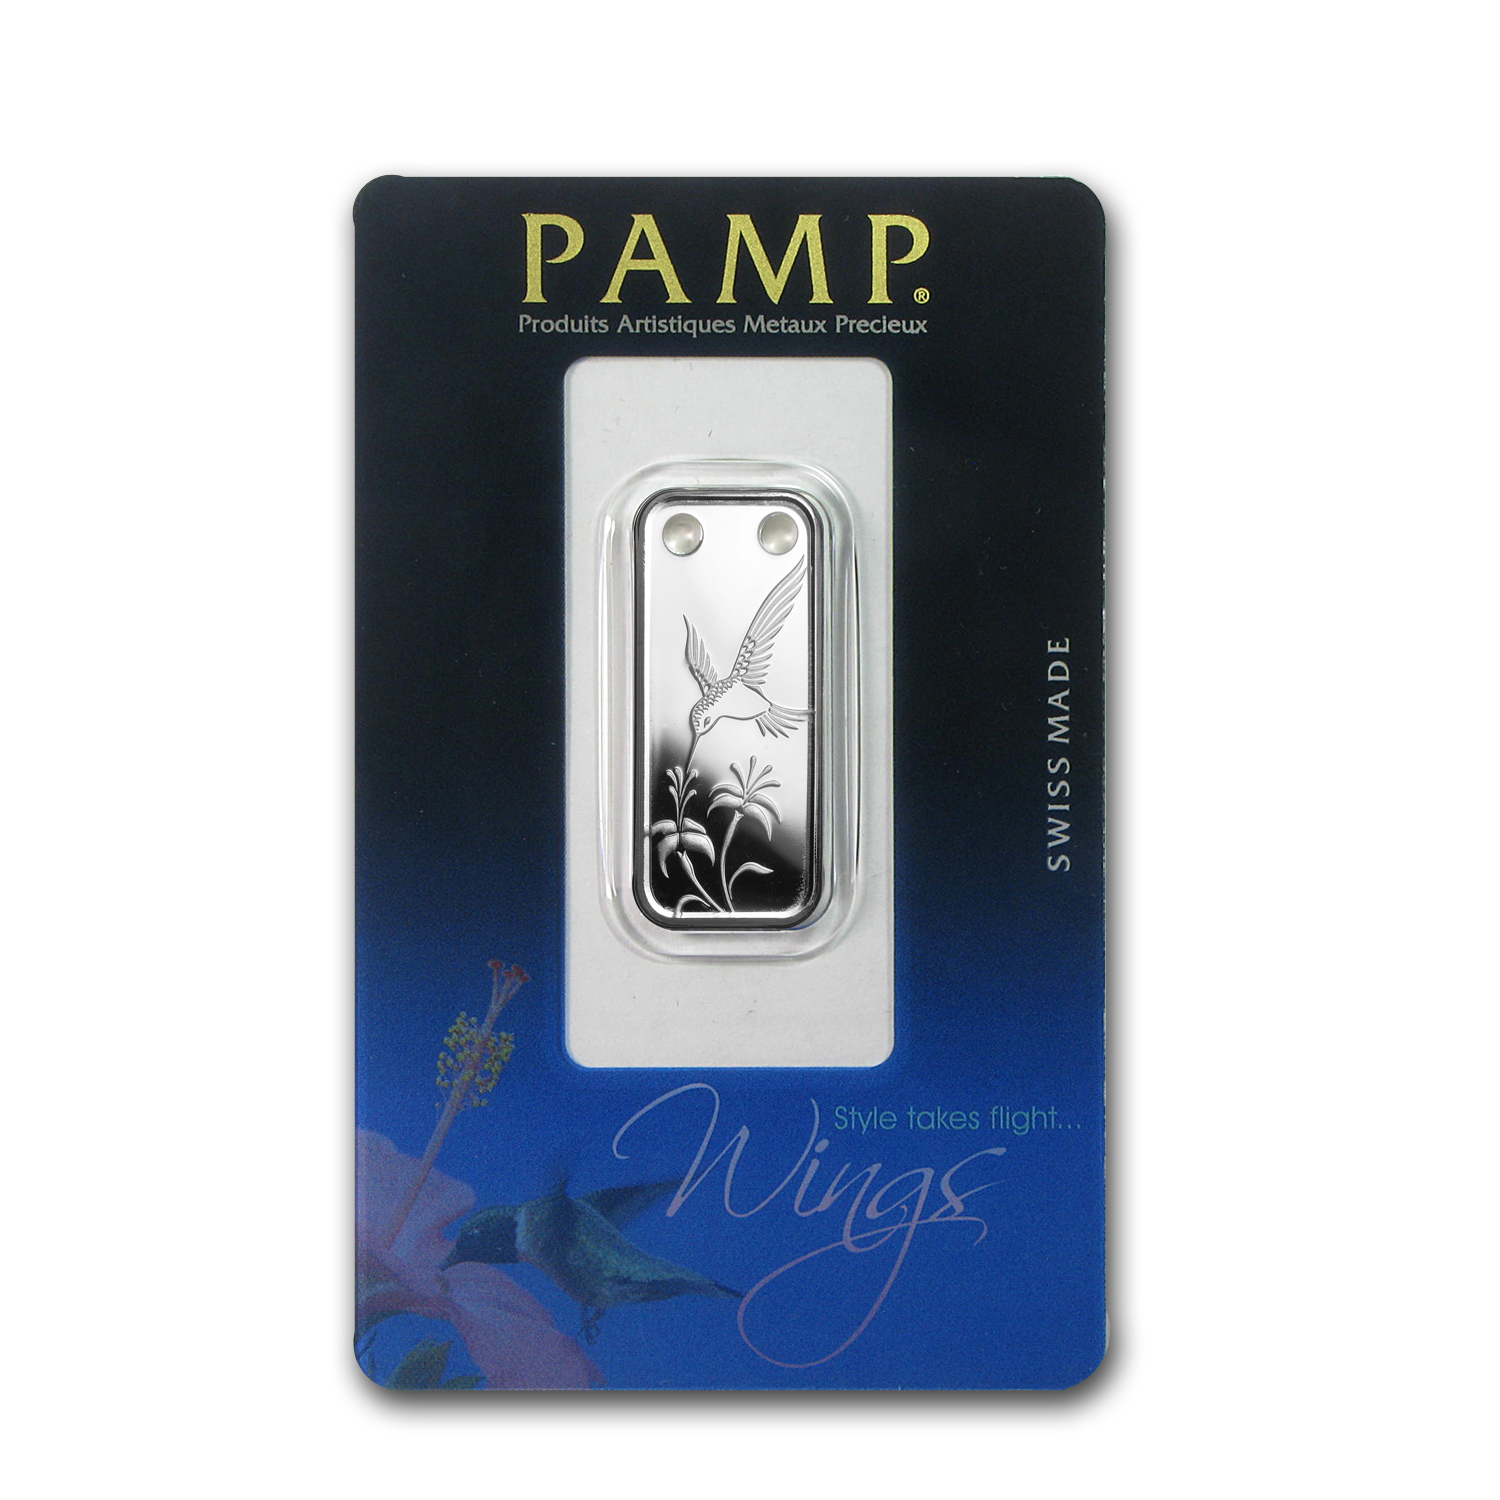 Hummingbird - 1/5 oz Proof Silver Pamp Ingot Pendant